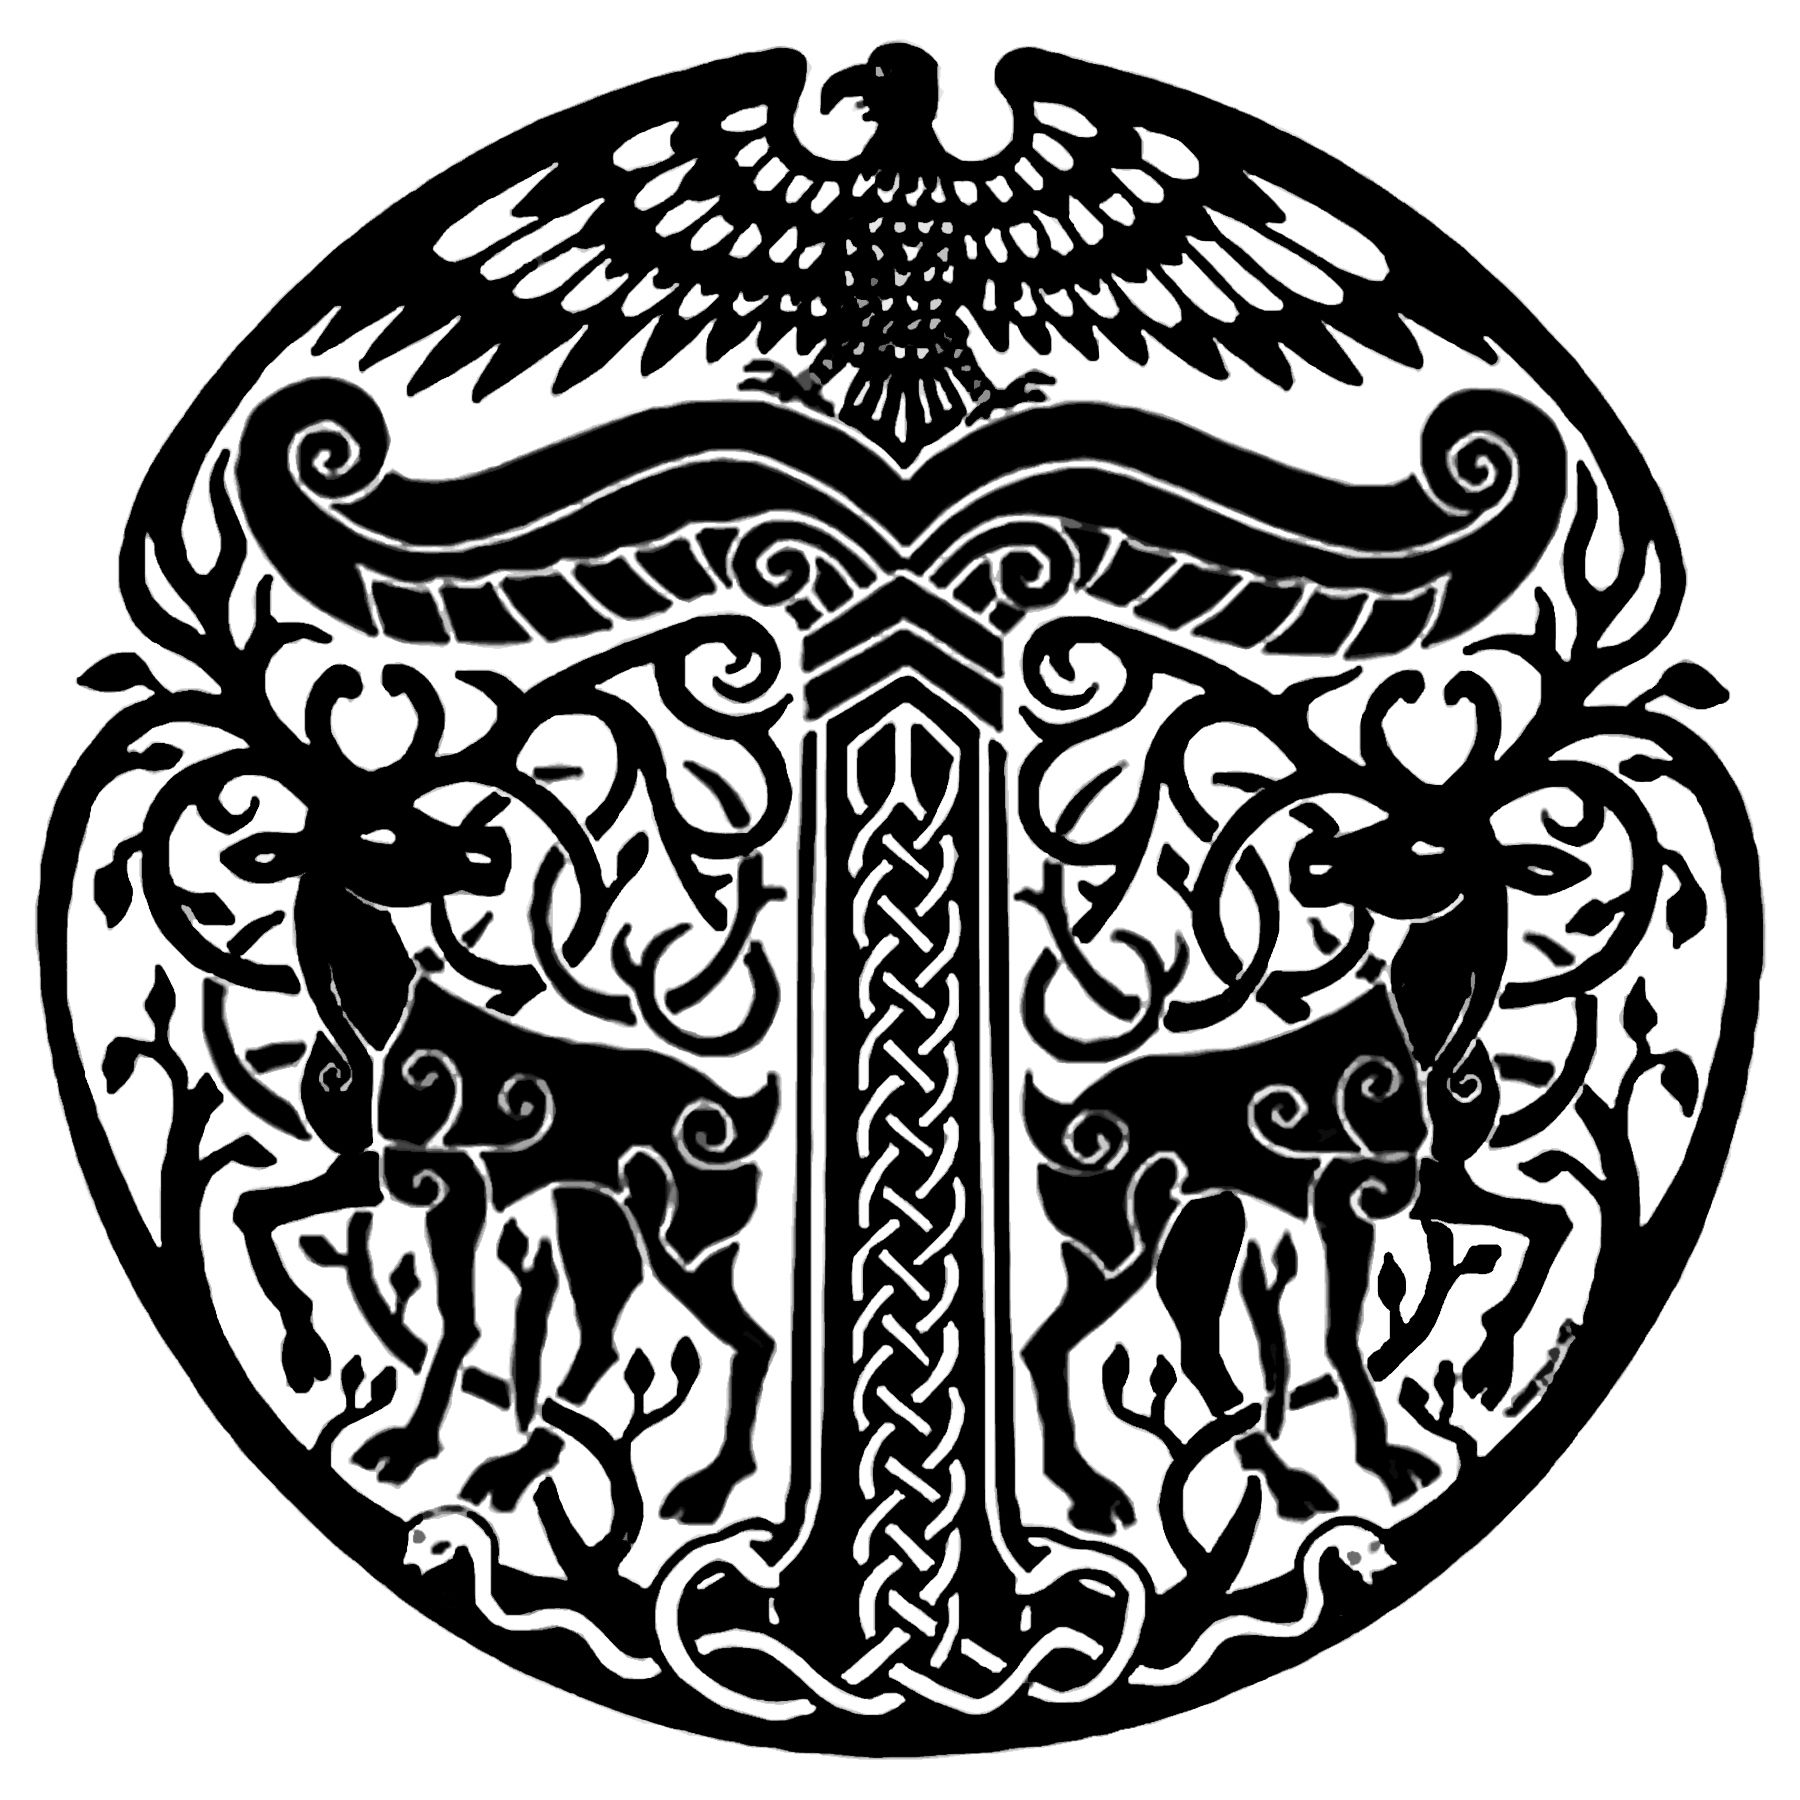 A rather nice irminsul just because pinterest nice and tattoo the symbol of the irminsul of the pagan german tribes notice the two stags flanking it while sitting on top is a bird of preymaybe a turul bird buycottarizona Images